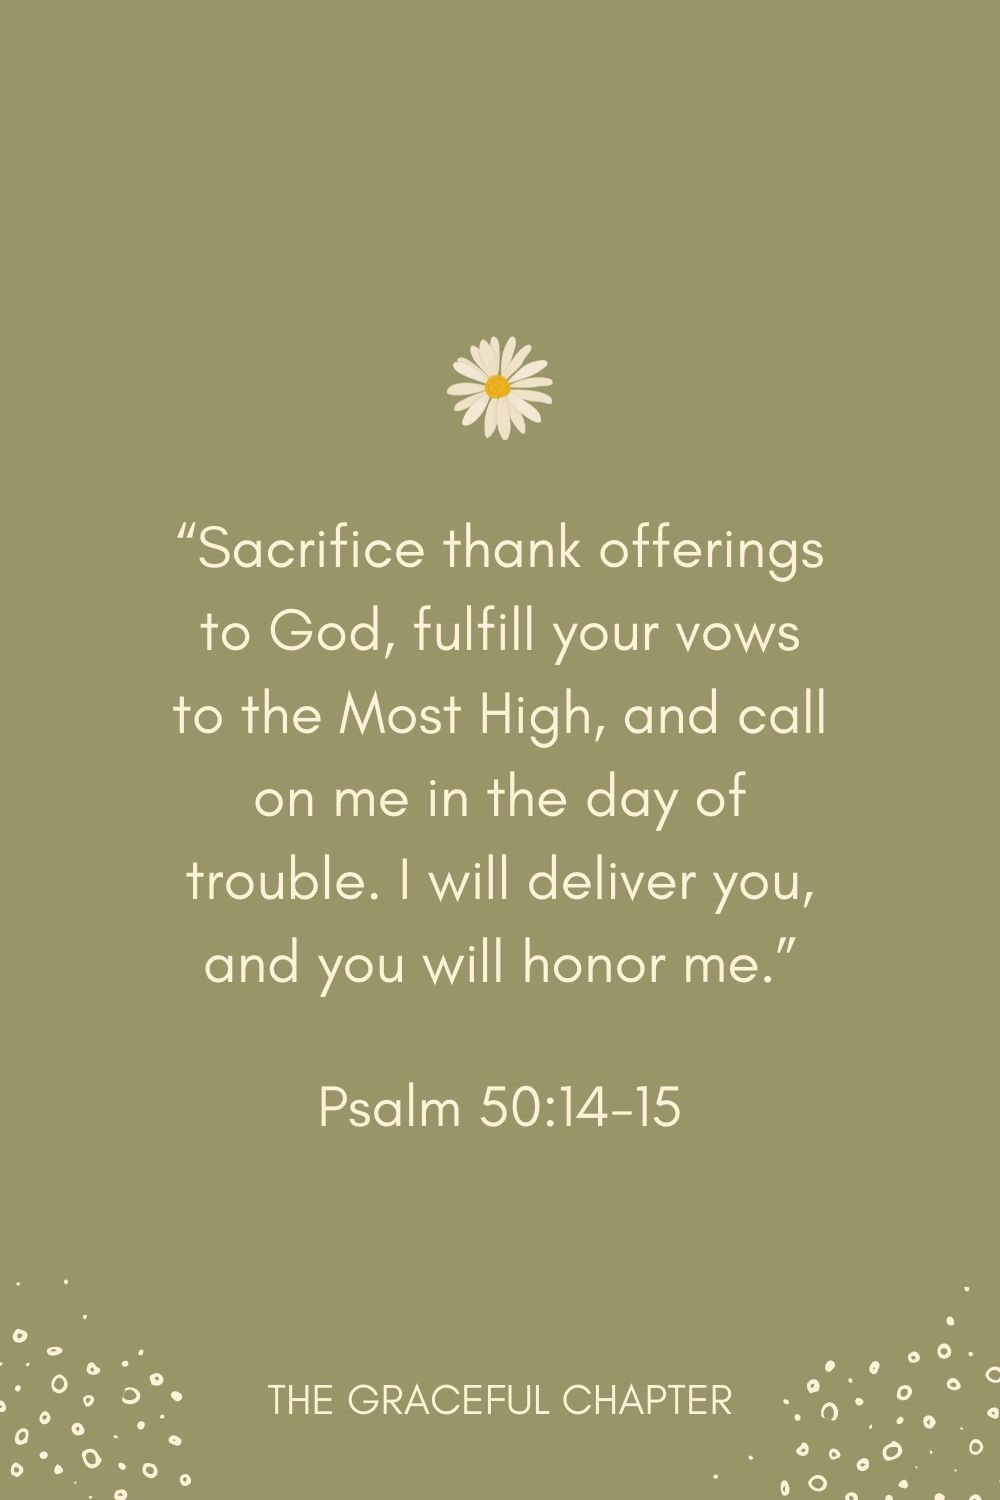 """""""Sacrifice thank offerings to God, fulfill your vows to the Most High, and call on me in the day of trouble. I will deliver you, and you will honor me."""" Psalm 50:14-15"""